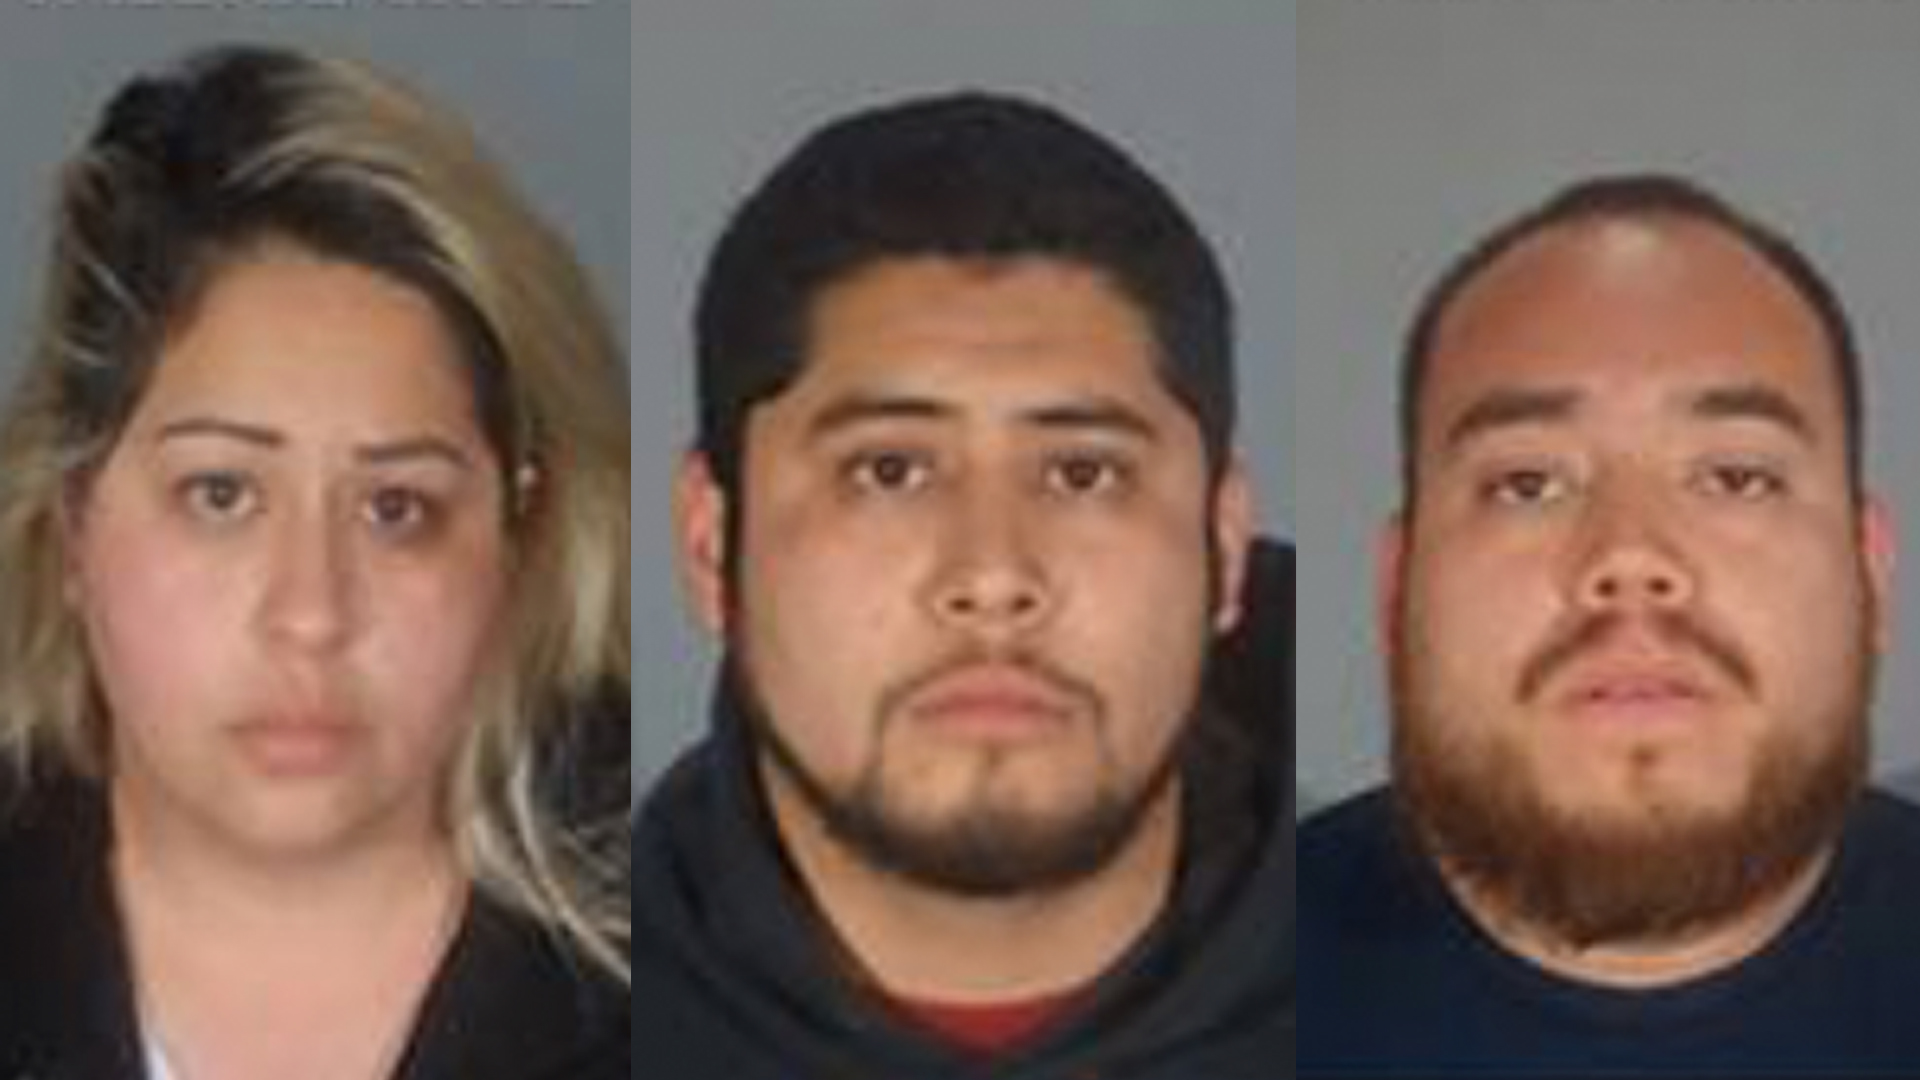 Valerie Cruz, 30, (left), Alejandro Cruz, 25, (center) and Pedro Isais, 28, (right) appear in undated photos provided by the Santa Monica police Department on Feb. 19, 2019.